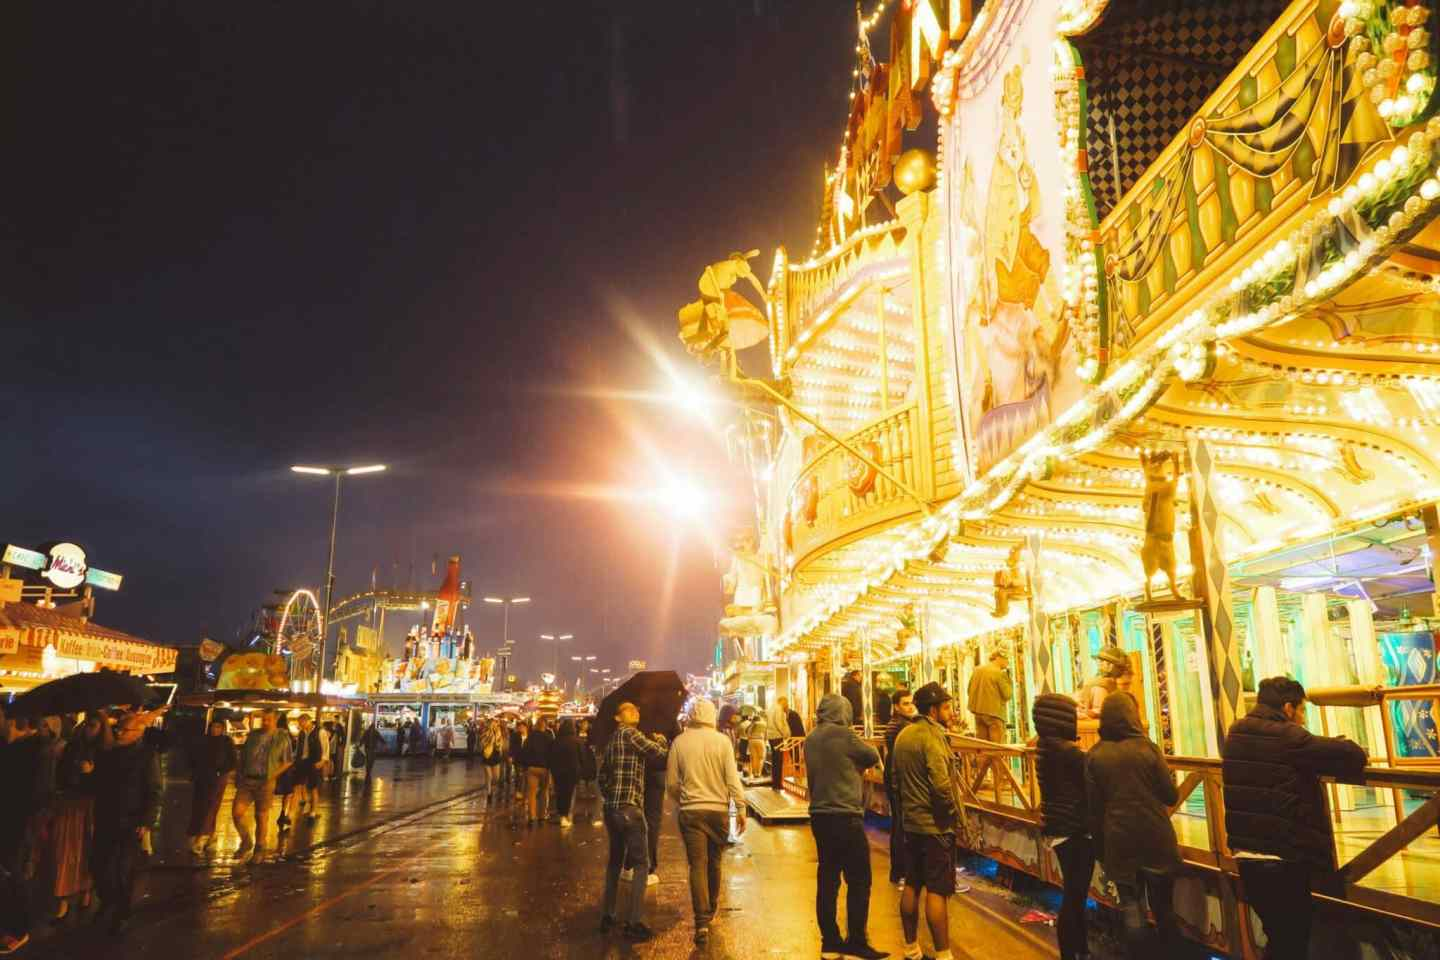 Beginners Guide To Oktoberfest From How To Order Beer To The - 10 best tents to visit at oktoberfest in munich